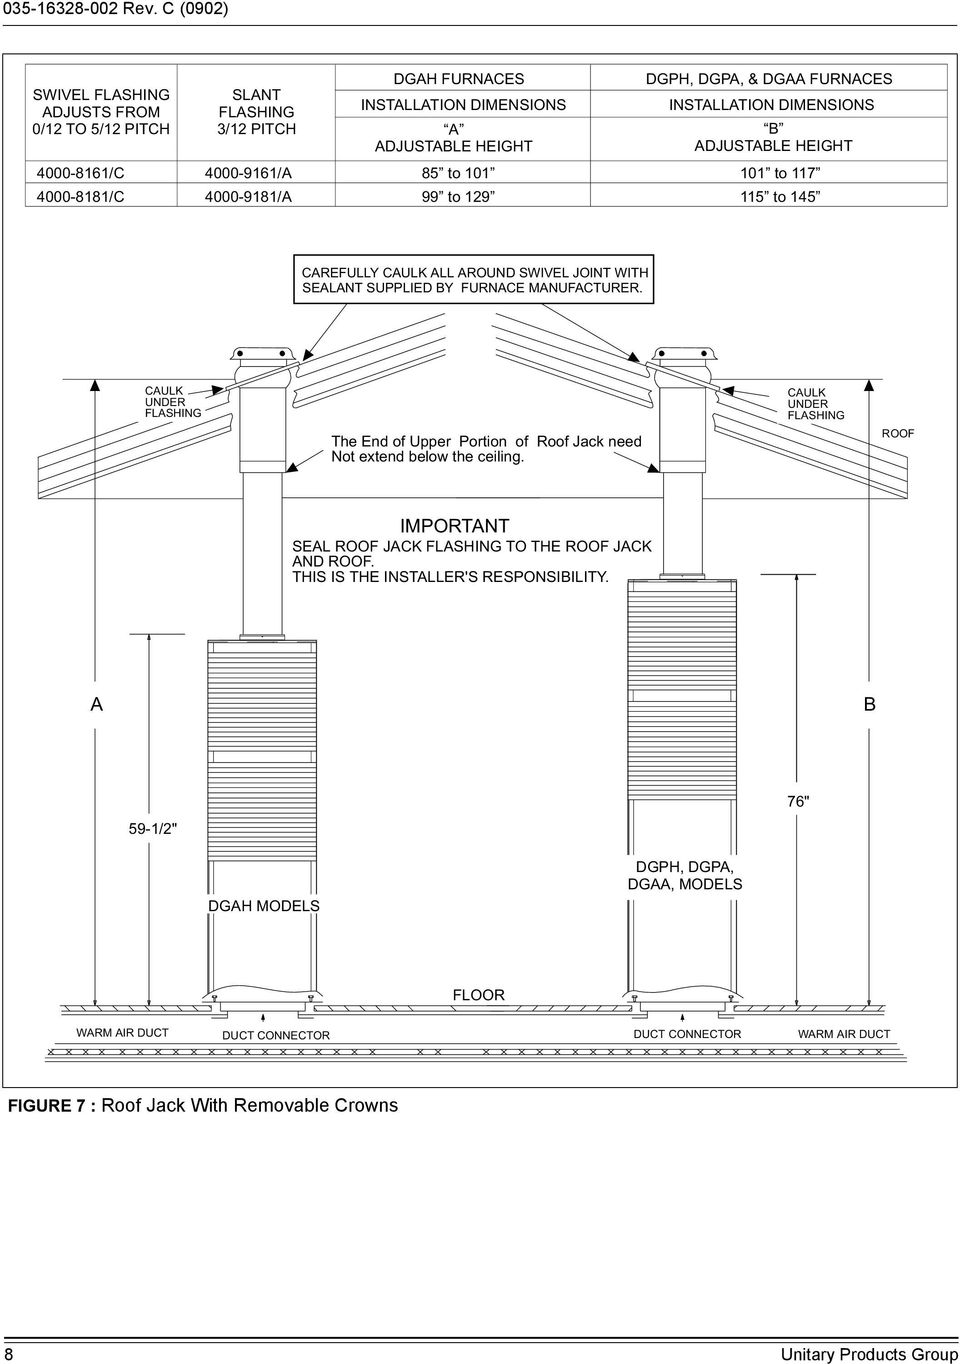 CAULK UNDER FLASHING The End of Upper Portion of Roof Jack need Not extend  below the